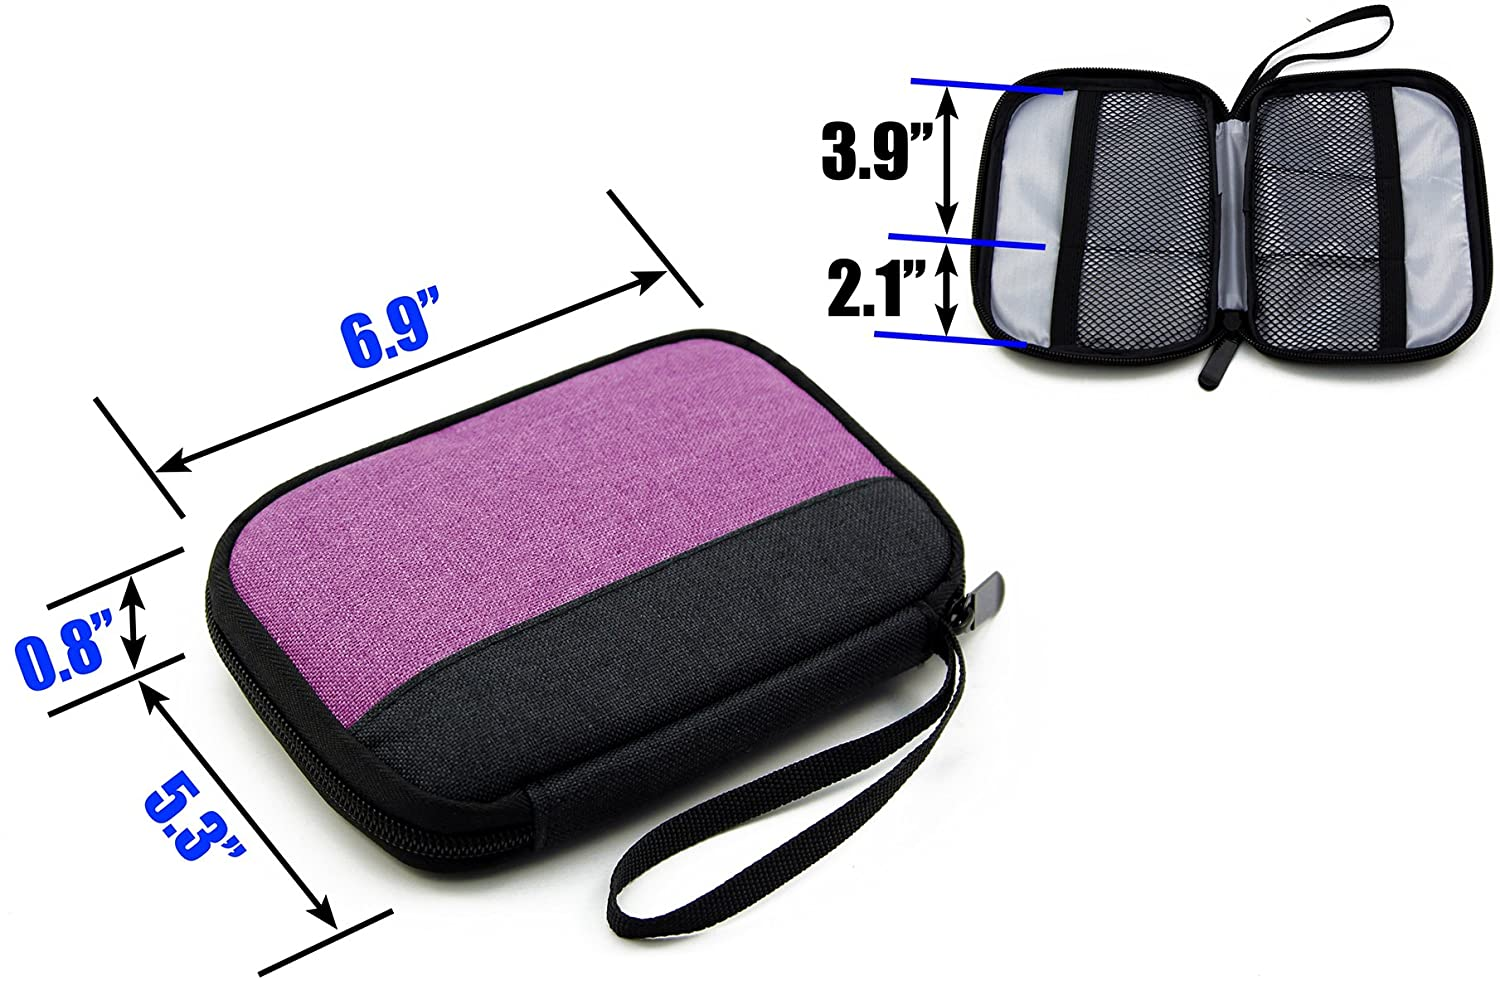 Amazon.com: Admirable Idea Small Electronic Organizer Pouch Zipper Travel Cosmetic Makeup Handbag Coins/USB/Hard Drive/Cables Carry Case with Hand Strap ...